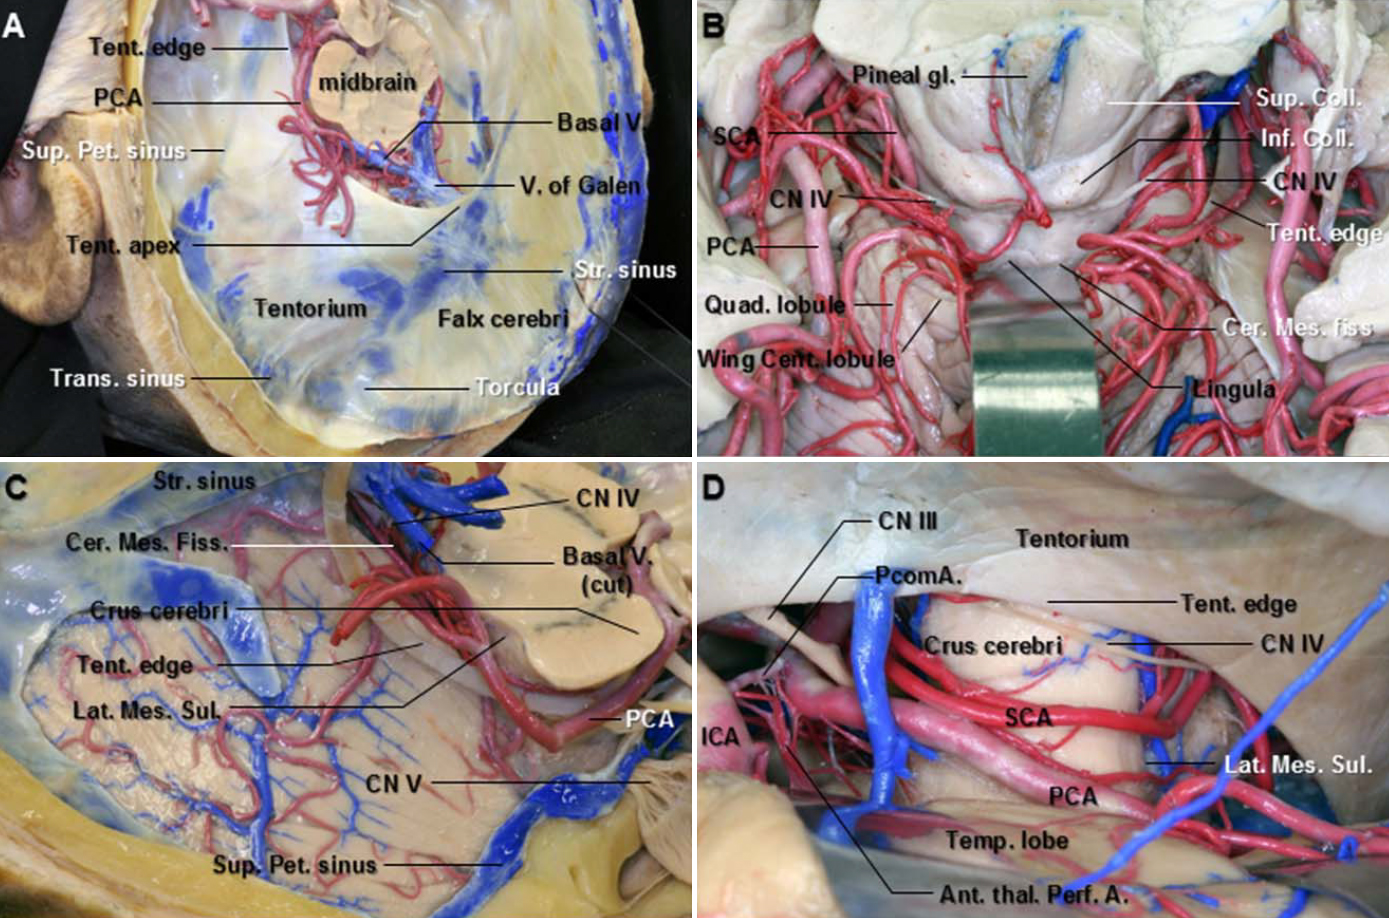 Figure 1. A. Superolateral view of the falx and tentorium after removing the cerebrum. The tentorial edges sweep along the lateral margin of the cerebral peduncle. The tentorial apex is located at the junction of the vein of Galen and the straight sinus. The tentorial edges slope downward from the apex. B. Superoposterior view of the cerebellomesencephalic fissure. The central lobule and culmen of the cerebellar vermis have been retracted posteriorly to expose the cerebellomesencephalic fissure, which extends forward between the cerebellum and midbrain. The anterior wall of the fissure is formed in the midline by the collicular plate and lingual, and laterally by the superior cerebellar peduncles. The trochlear nerve arises below the inferior colliculi. The initial part of the cisternal segment of the trochlear nerve is followed laterally in the cerebellomesencephalic fissure. C. Superolateral view of the right tentorial surface of the cerebellum. The tentorial edge sweeps along the lateral margin of the cerebral peduncle. The tentorium has been removed while the tentorial venous sinuses and tentorial edge have been preserved. The posterior cerebral artery runs posteriorly along the lateral margin of the midbrain above the tentorial edge. D. Subtemporal view. The right temporal lobe has been elevated to expose the PCA, SCA, and trochlear nerve in the anterior and middle incisural spaces. The PCA passes above and the SCA below the oculomotor nerve. The trochlear nerve courses around the side of the brainstem. It becomes subtentorial at the anterolateral part of the cerebral peduncle. Ant. Thal. Perf. A., anterior thalamoperforating artery; Cent., central; Cer. Mes. Fiss., cerebellomesencephalic fissure; CN., cranial nerve; Coll., colliculus; ICA., internal carotid artery; Inf., inferior; Lat. Mes. Sul., lateral mesencephalic sulcus; PCA., posterior cerebral artery; PcomA., posterior communicating artery; Pet., petrosal; Quad., quadrangular; SCA., superior cerebellar artery; Str., straight; Sup., superior; Tent., tentorium; Temp., temporal; Trans., transverse; V., vein. (Images courtesy of AL Rhoton, Jr.)